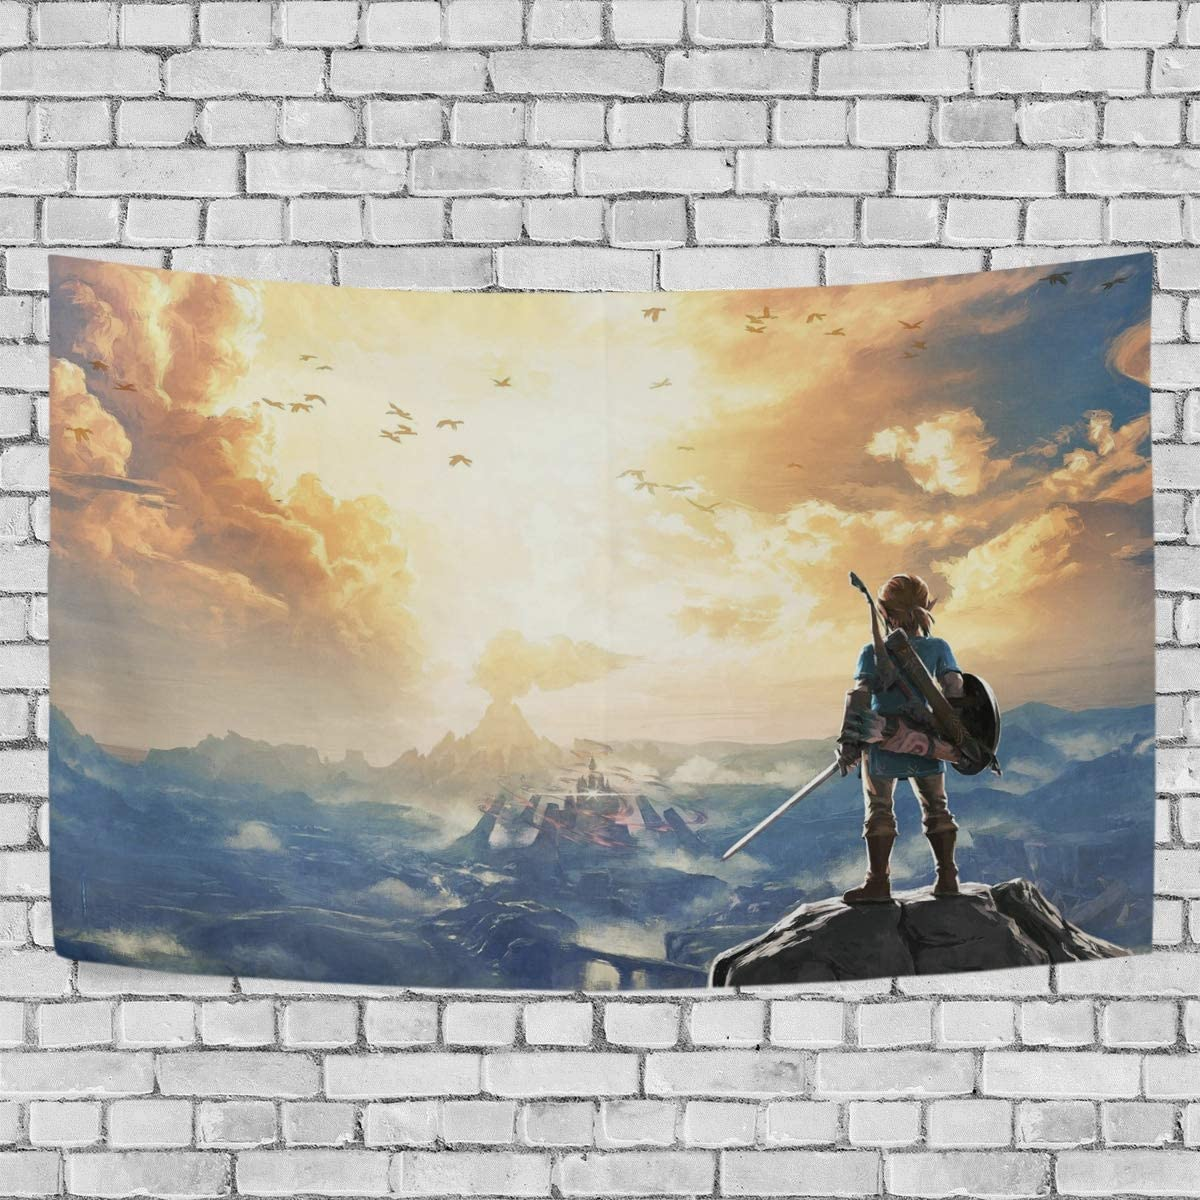 TRE ONE The Legend of Zelda Tapestry Wall Hanging Decoration for Apartment Home Art Wall Tapestry for Bedroom Living Room Dorm Fashion 60 x 51 inches